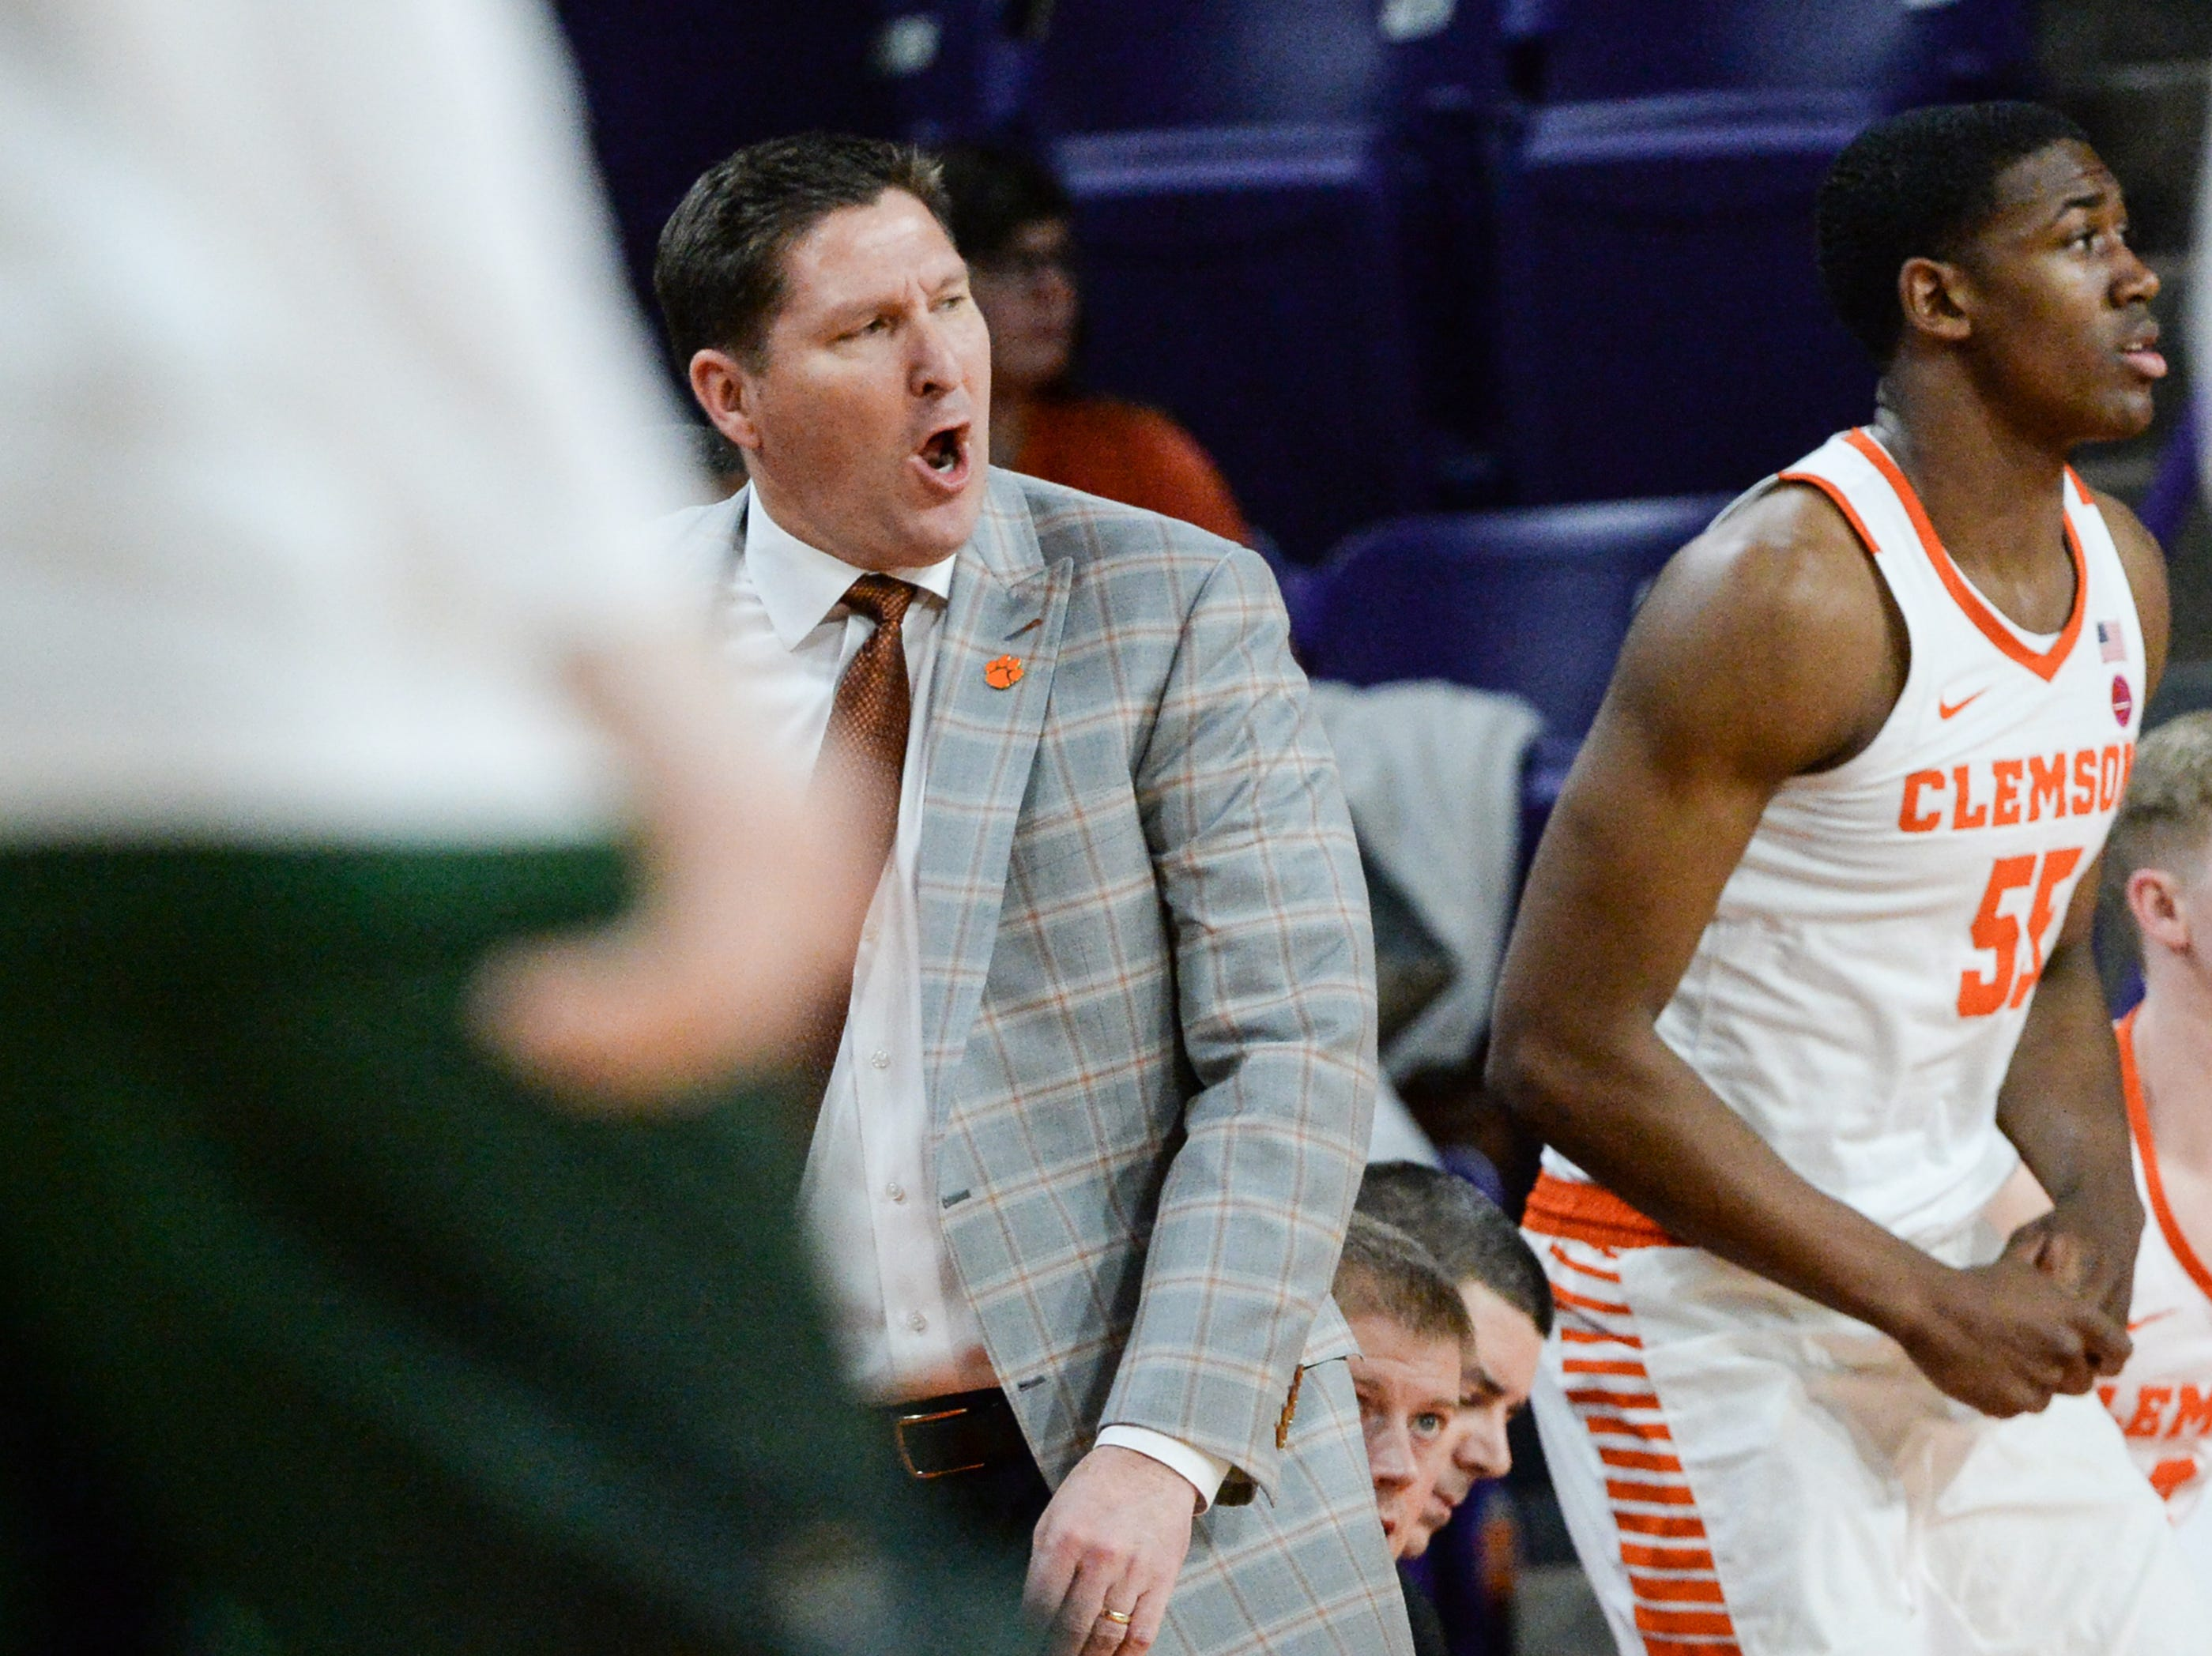 Clemson head coach Brad Brownell communicates with his players at the Wright State game during the first half of the NIT at Littlejohn Coliseum in Clemson Tuesday, March 19, 2019.